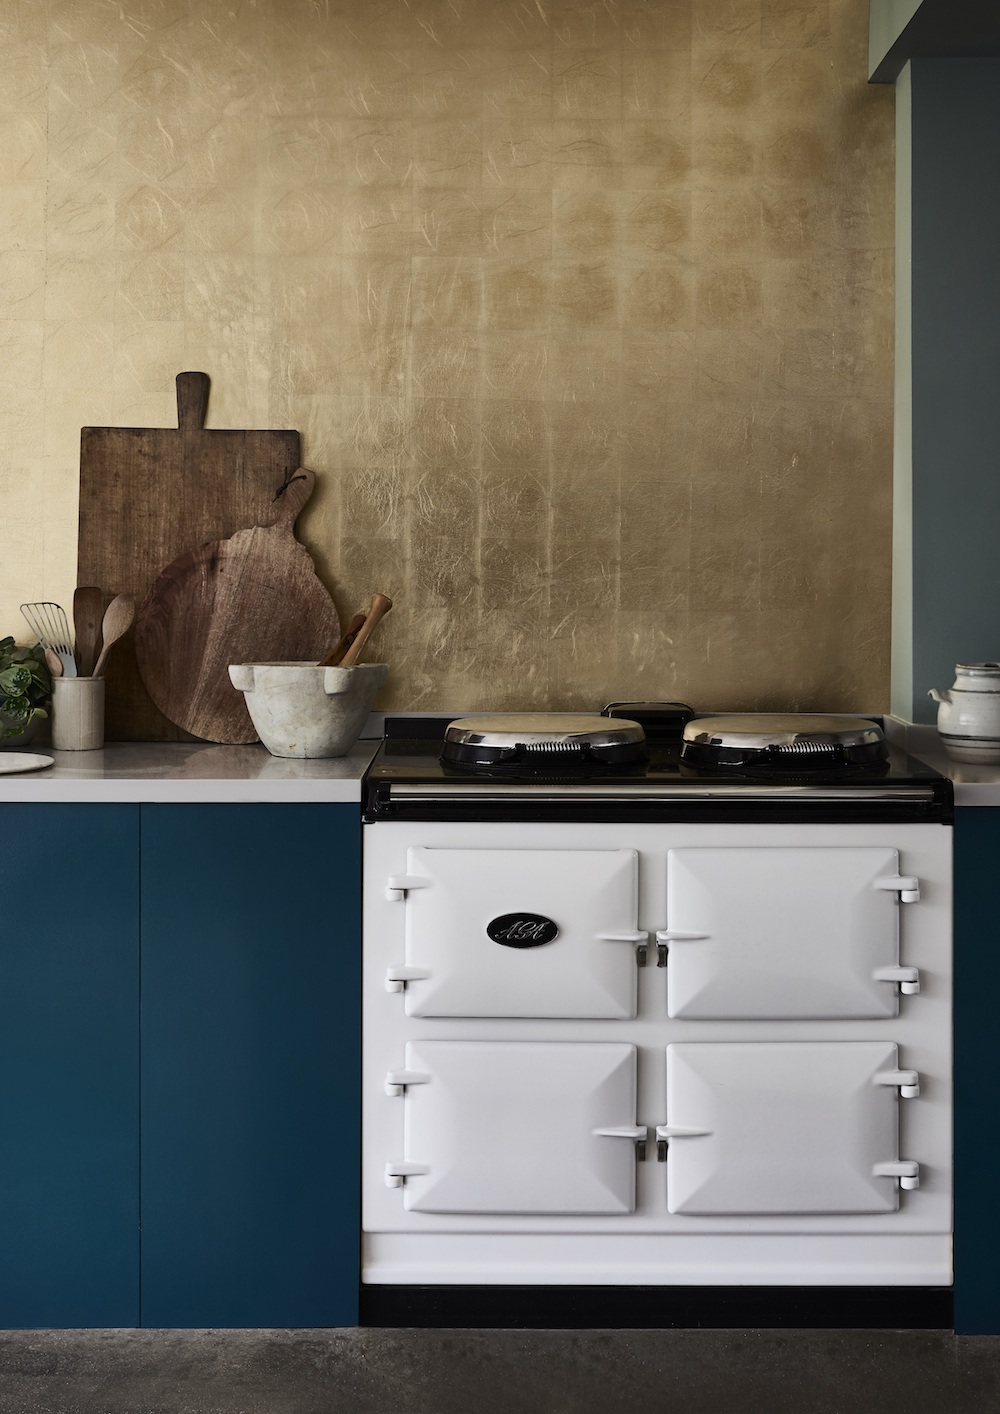 Chalk Paint in Aubusson Blue with Brass Leaf gilding on splashback.